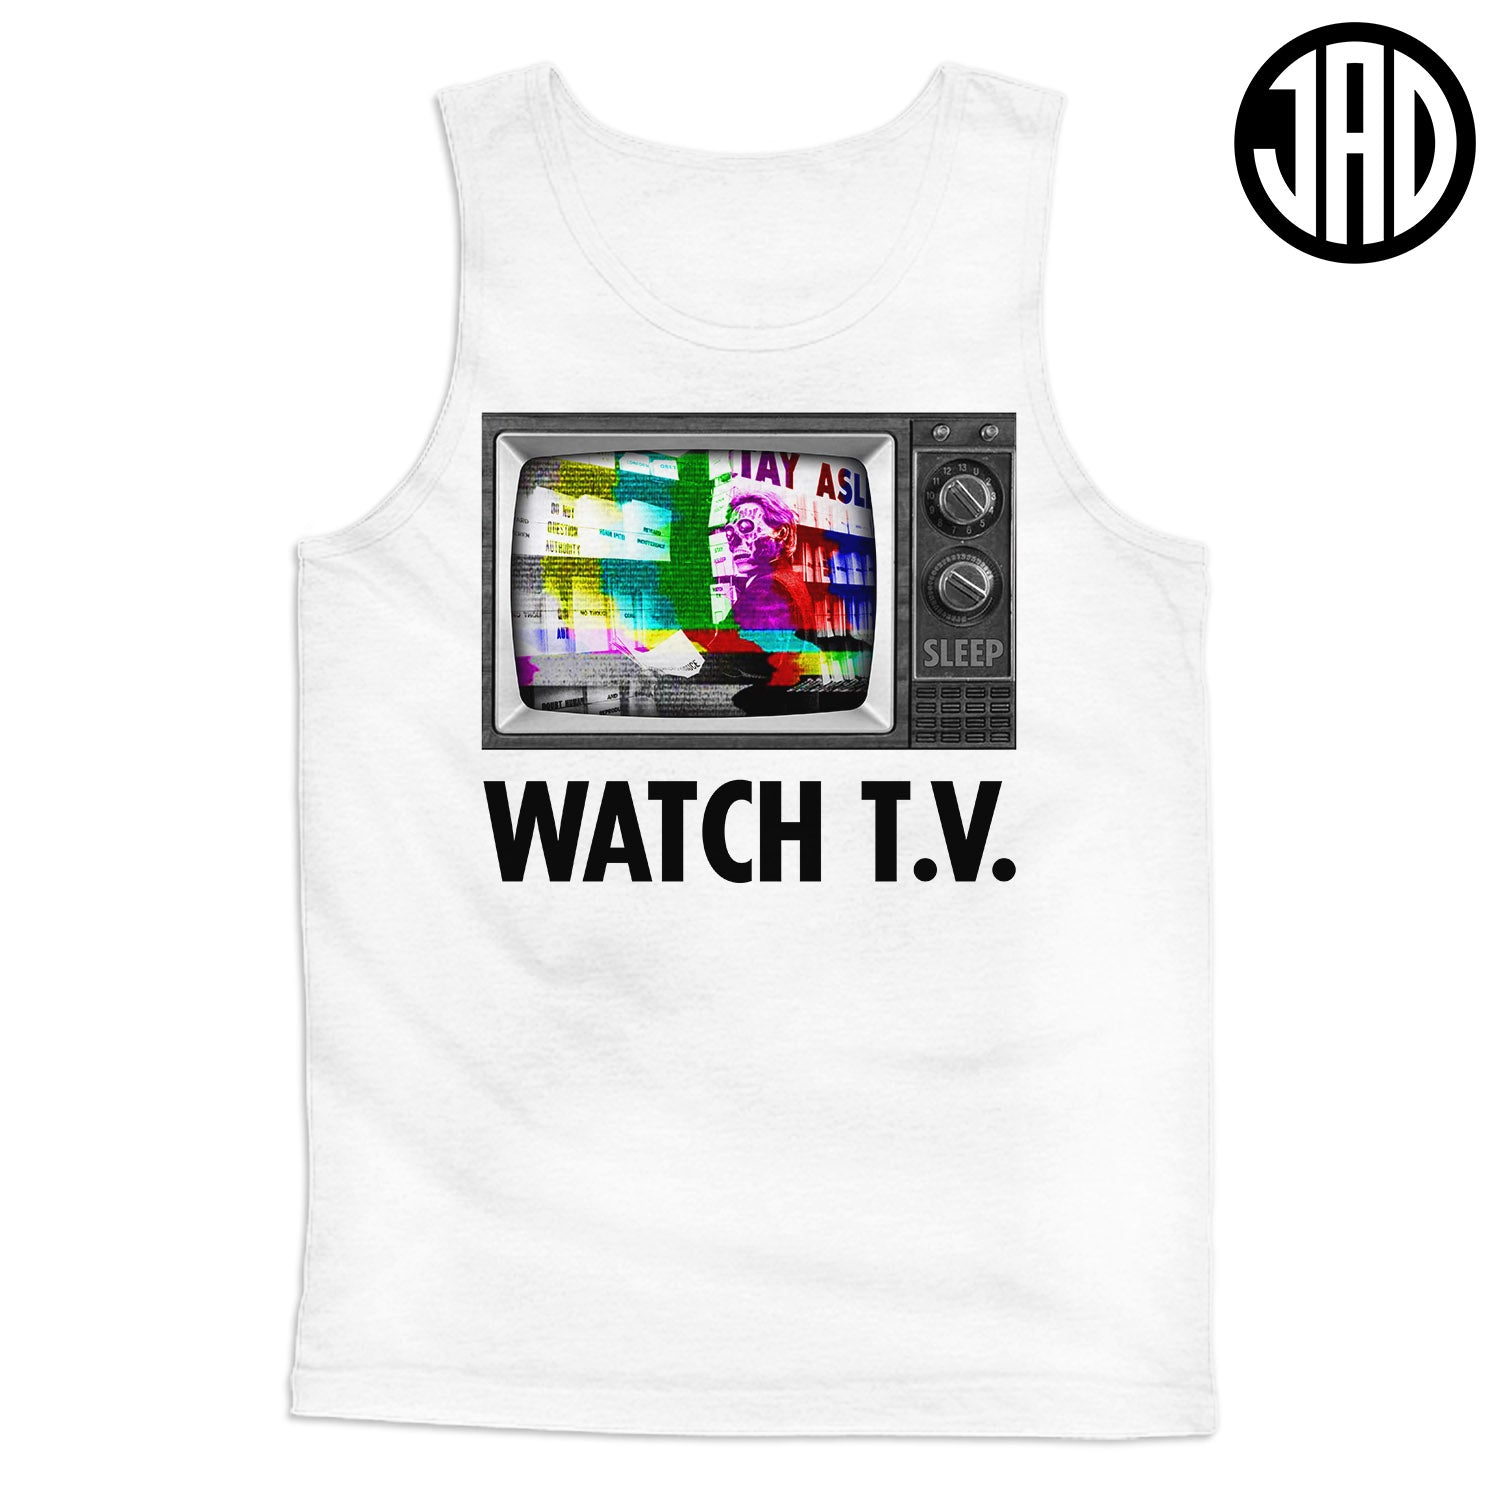 Watch TV - Men's (Unisex) Tank